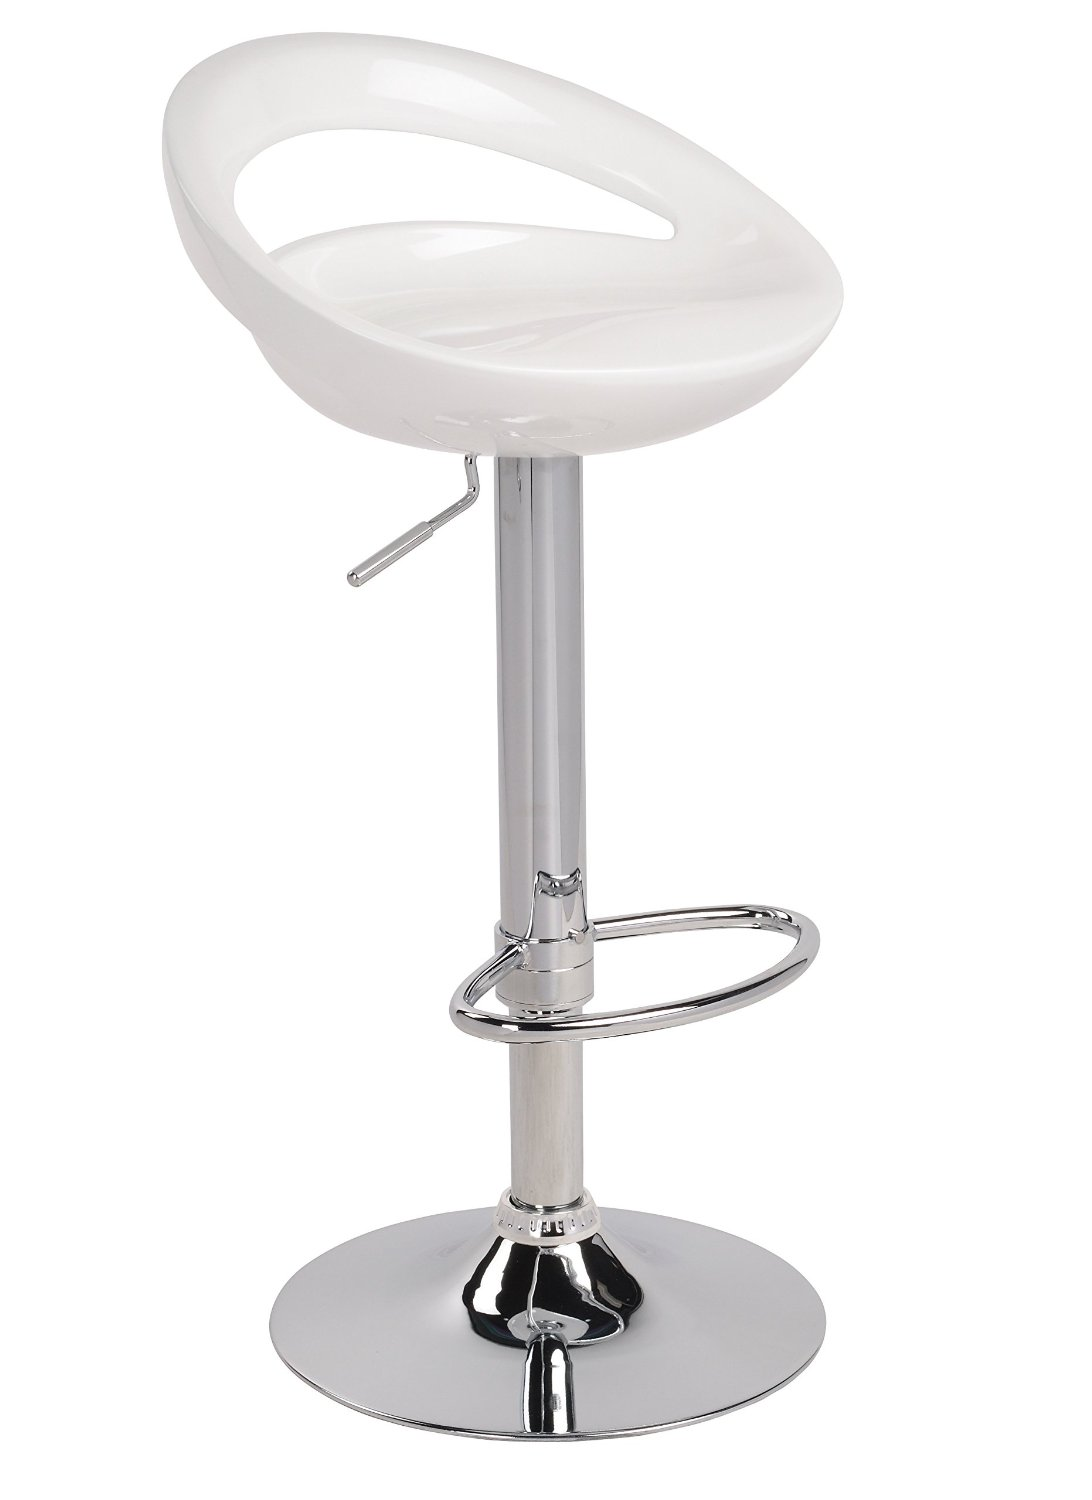 White Air Lift Adjustable Stools Swivel Bar Stool With A  : AM5005W from richbattery.com size 1092 x 1500 jpeg 59kB